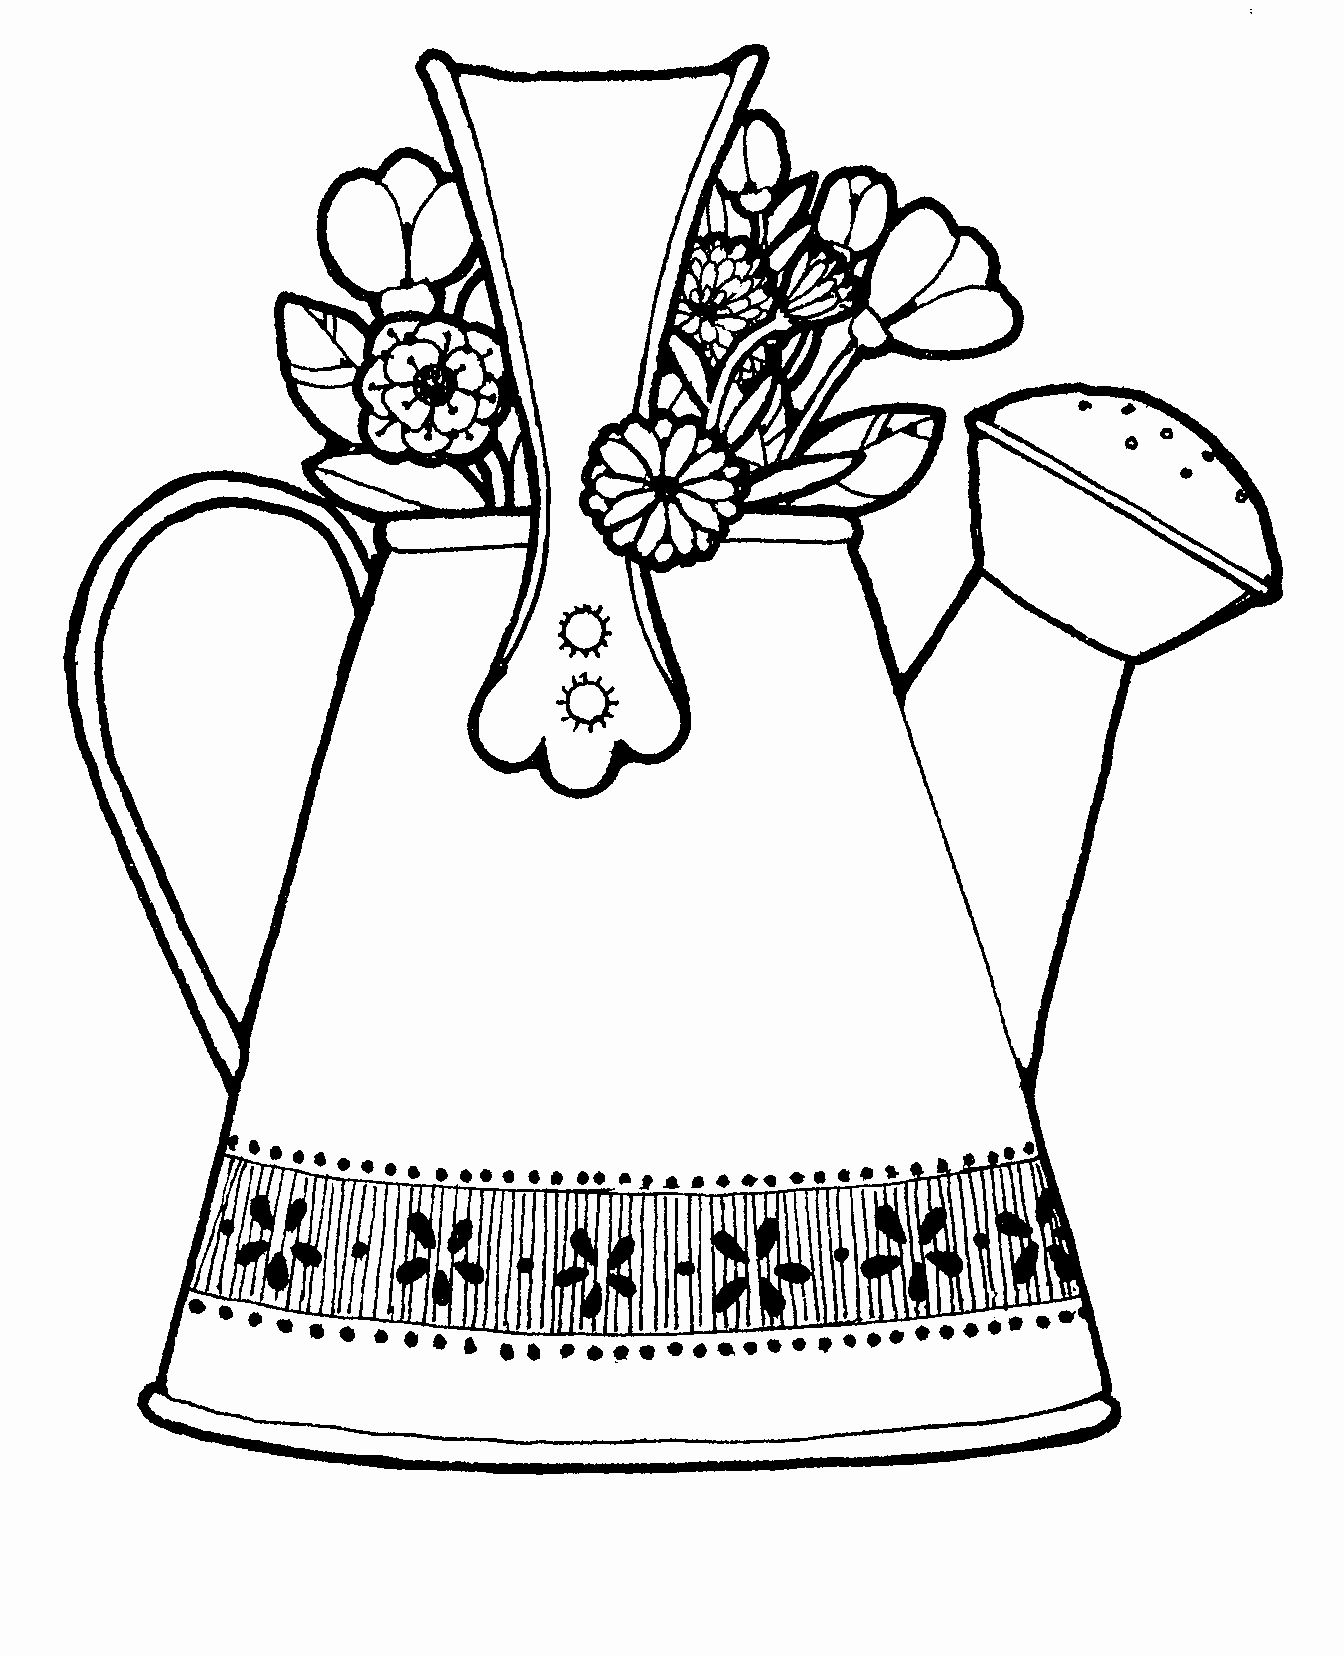 Watering Can Coloring Page Elegant Spring Watering Can Coloring Pages Clipart Best Coloring Pages Coloring Pages For Kids Power Rangers Coloring Pages